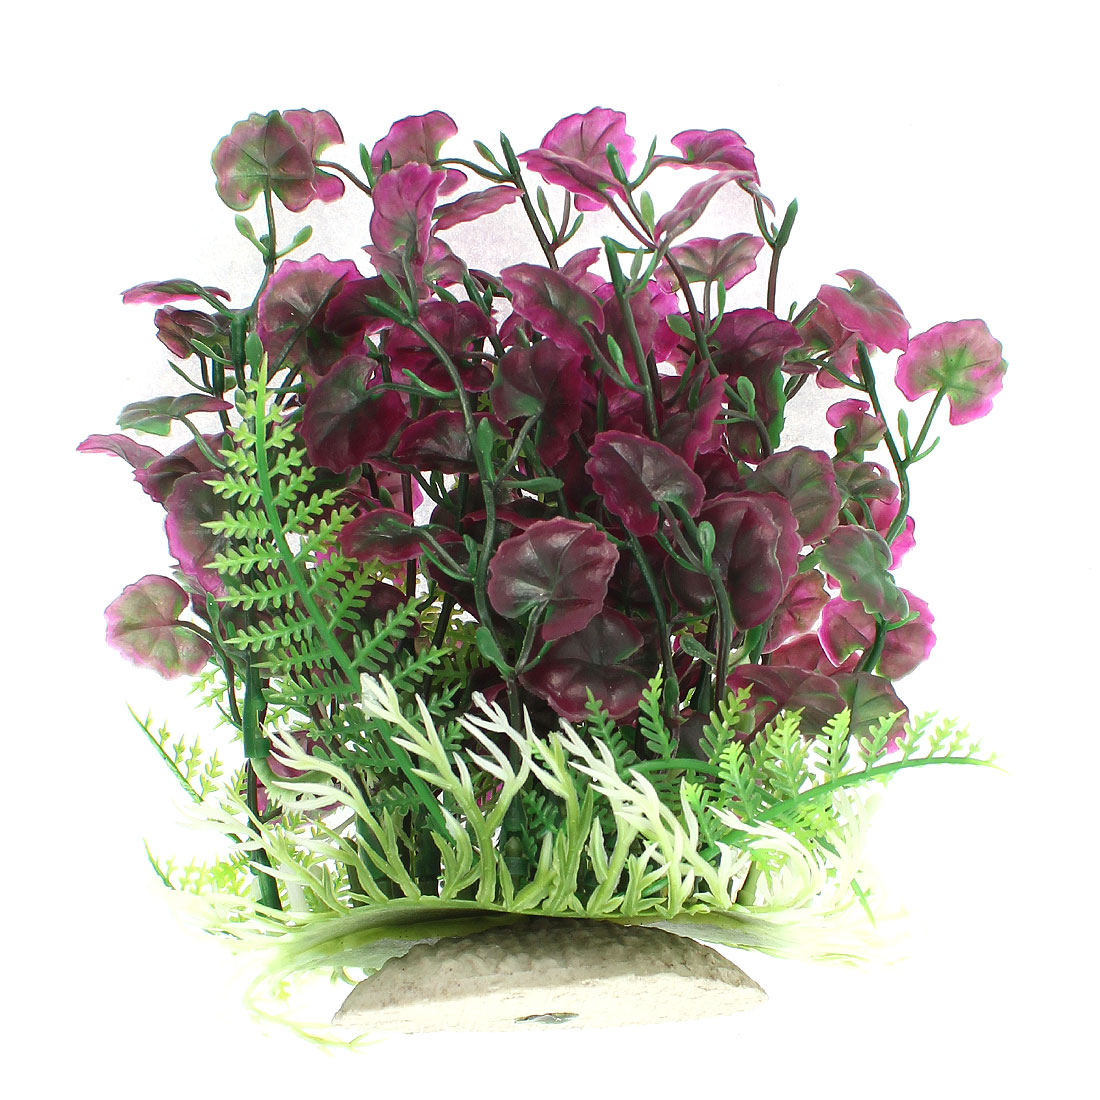 Aquarium Plastic Artificial Water Grass Plant Adornment 17cm Height